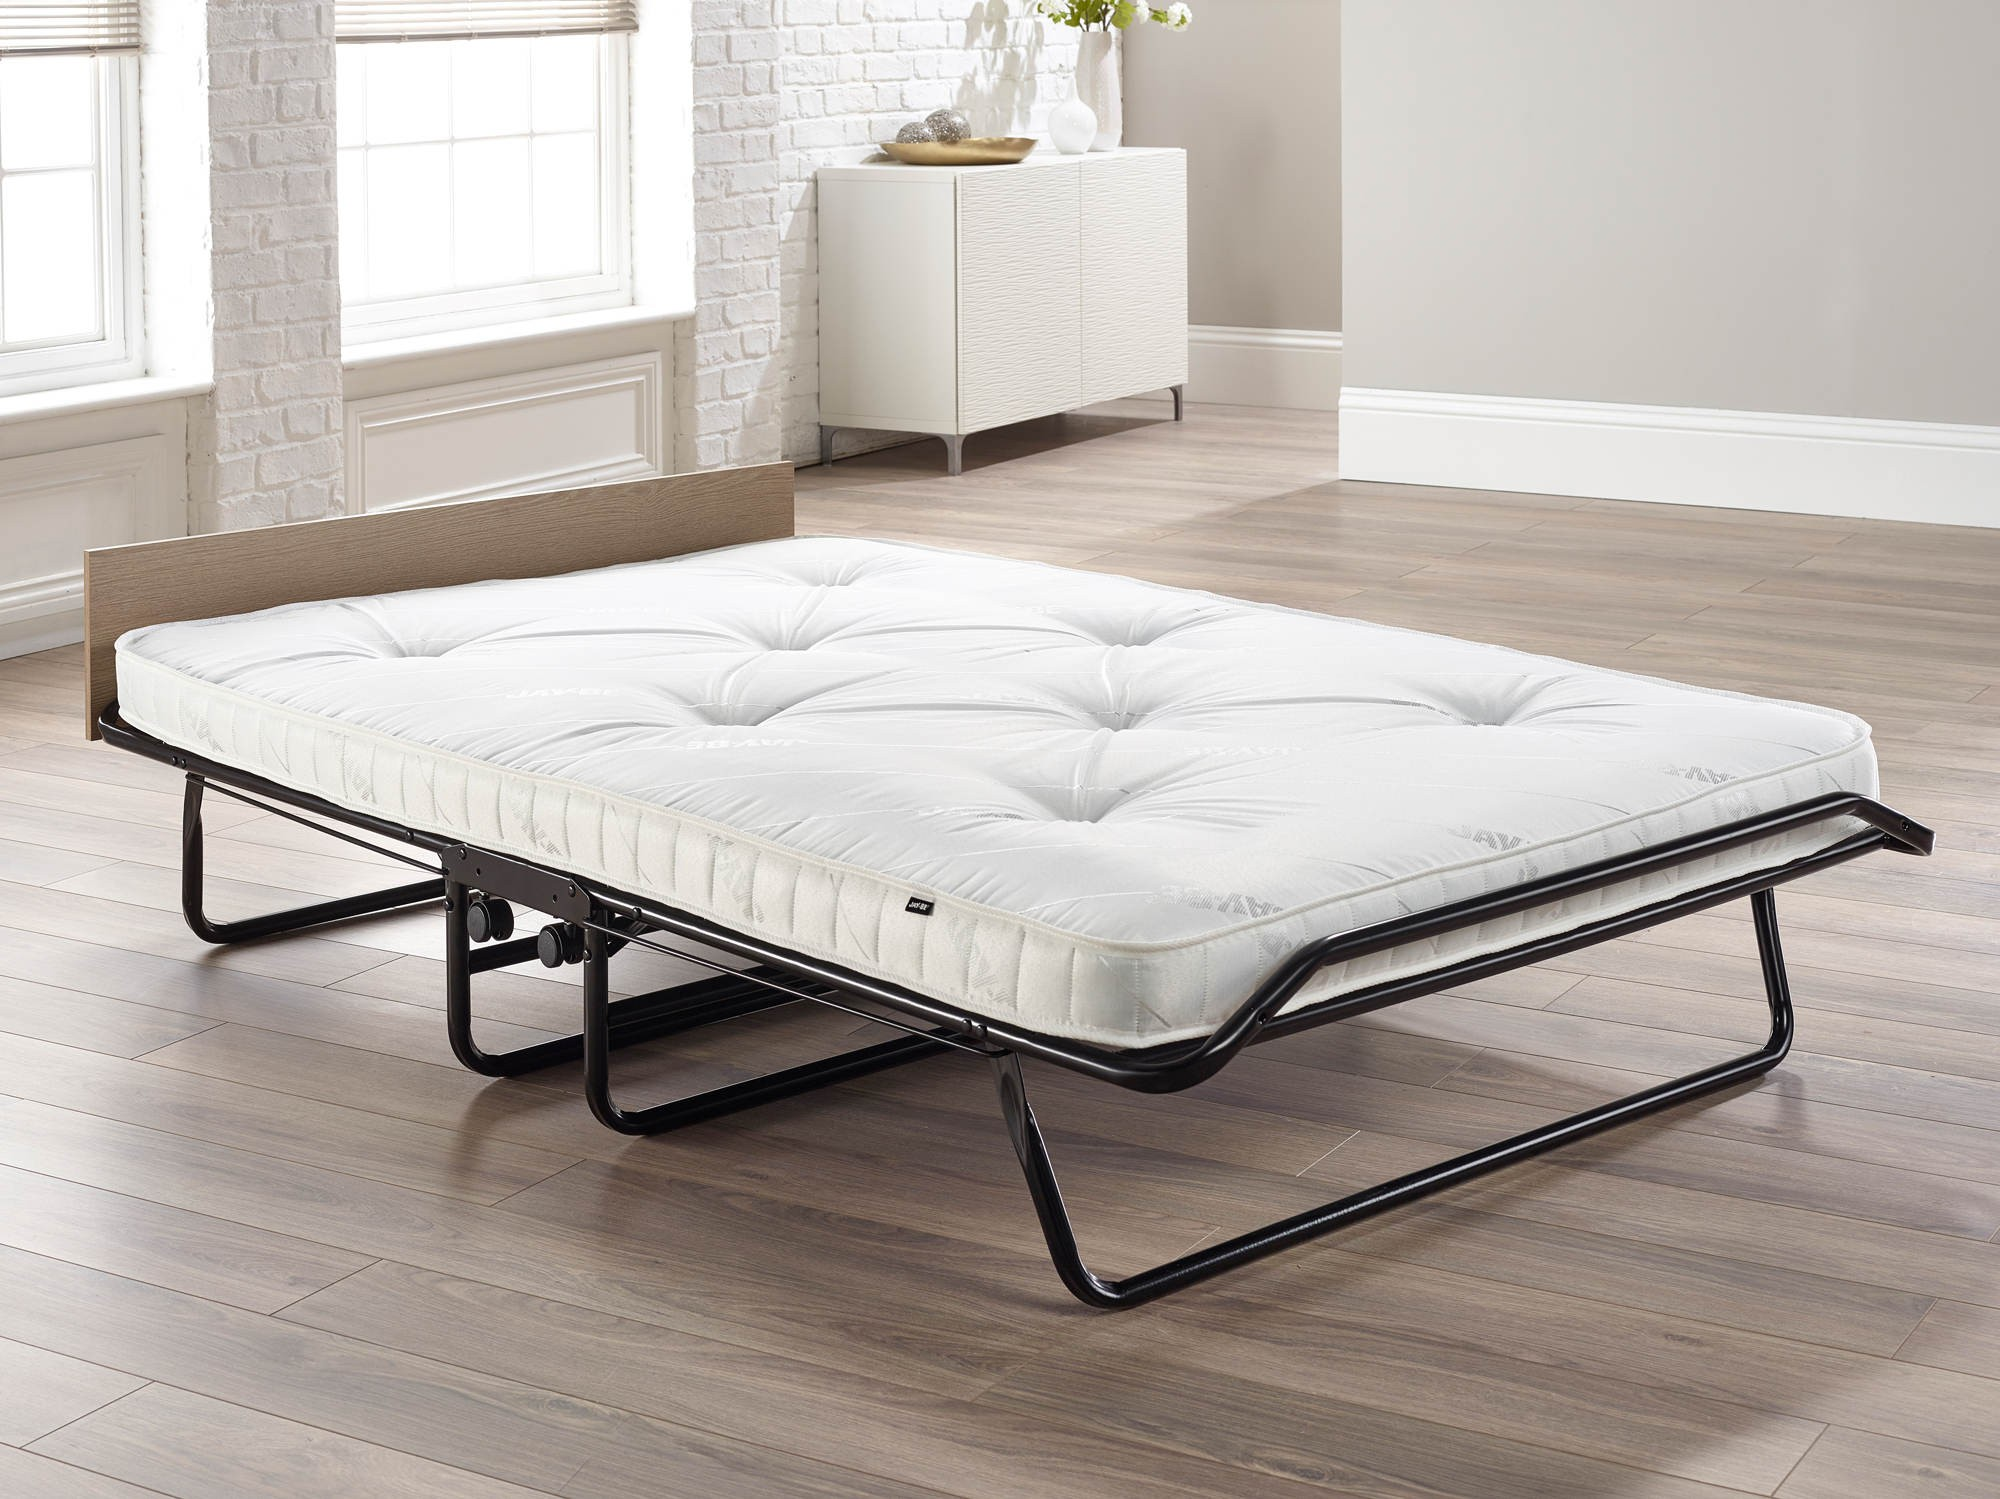 Luxury rollaway bed with spring mattress for Bed with mattress